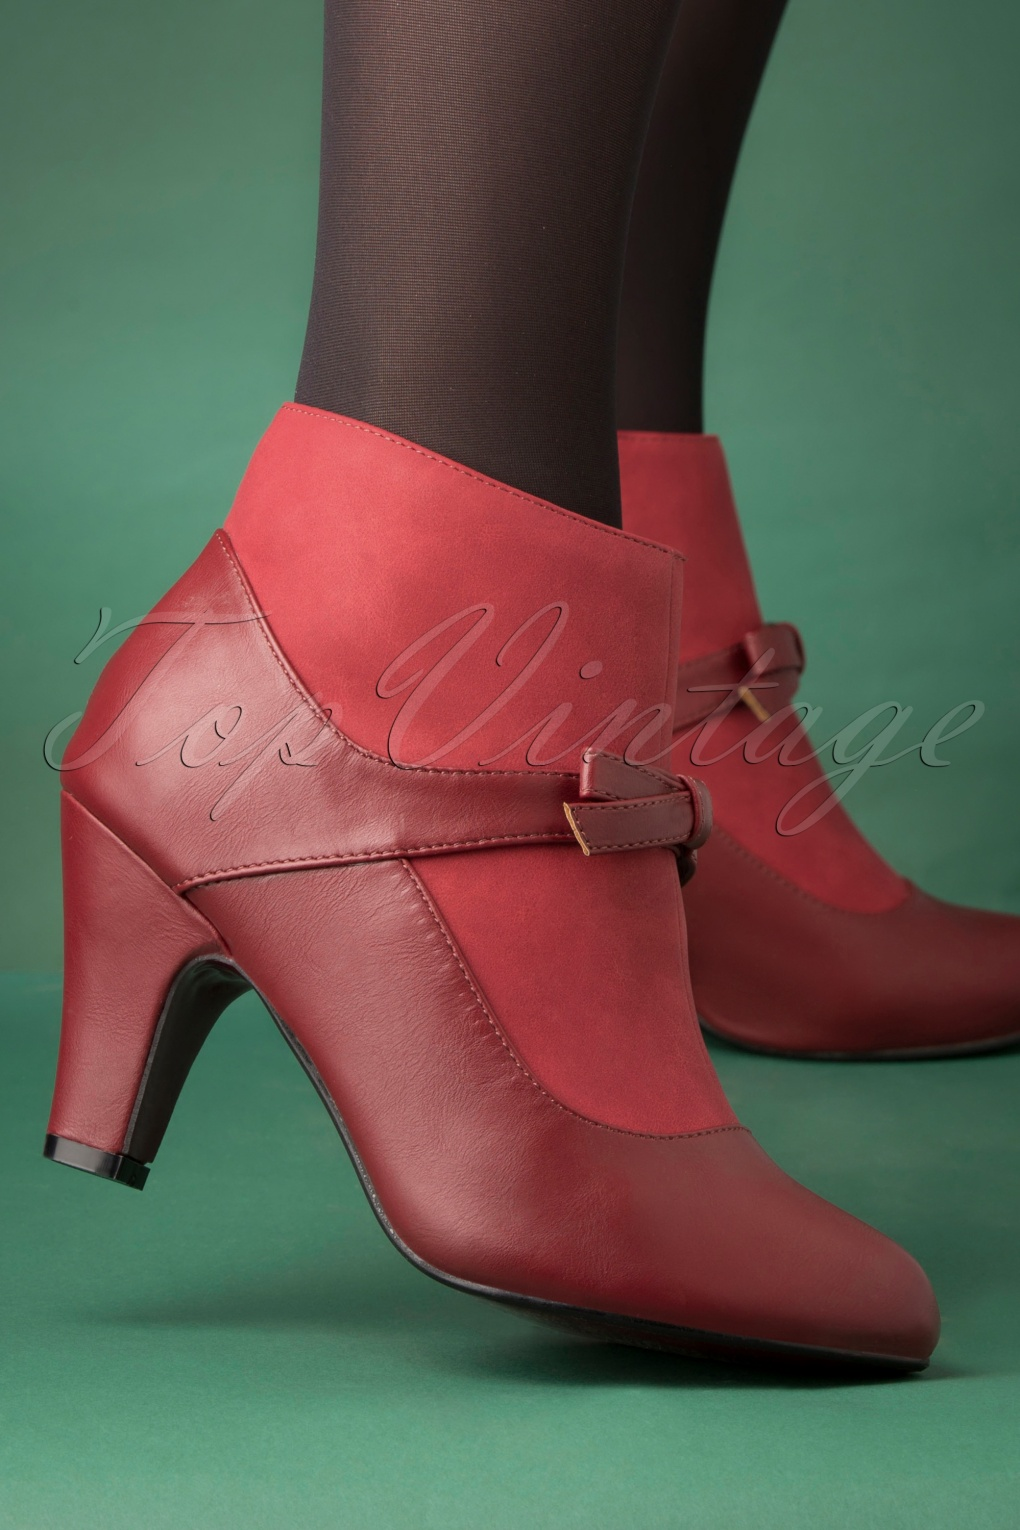 Vintage Style Shoes, Vintage Inspired Shoes 50s Vintage Wings Shoe Booties in Burgundy £63.87 AT vintagedancer.com